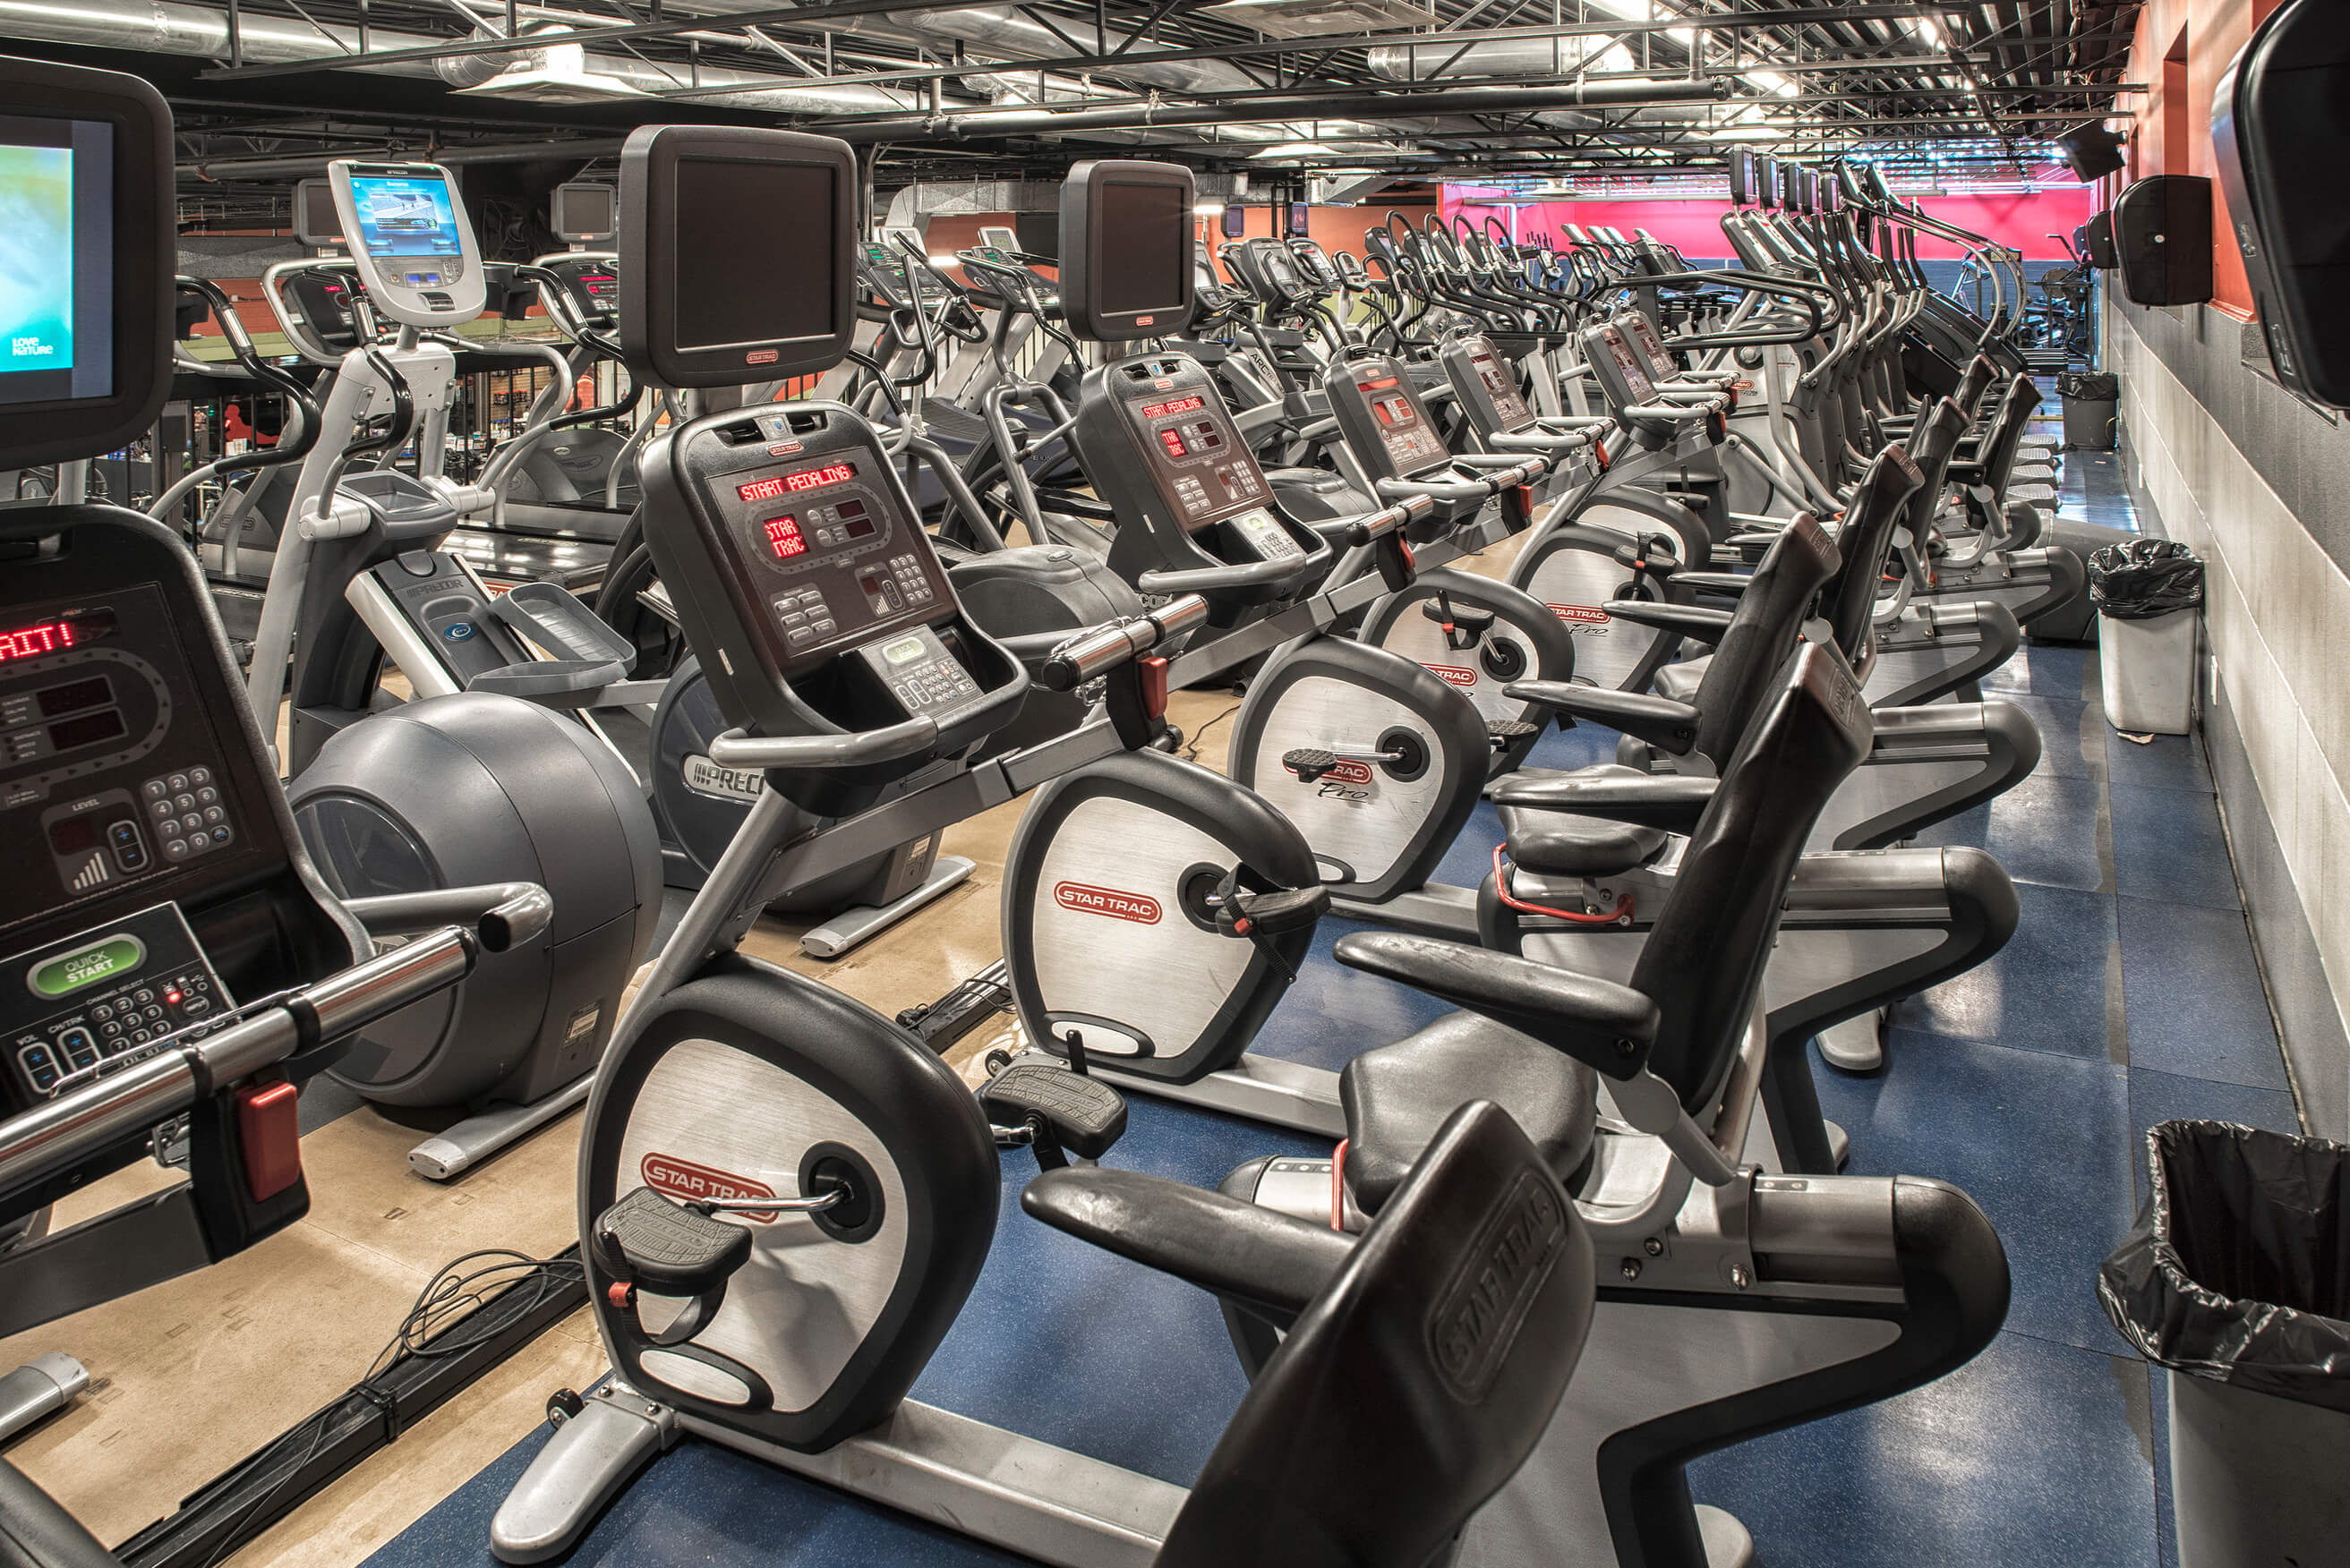 flex-gym-cardio-equipment